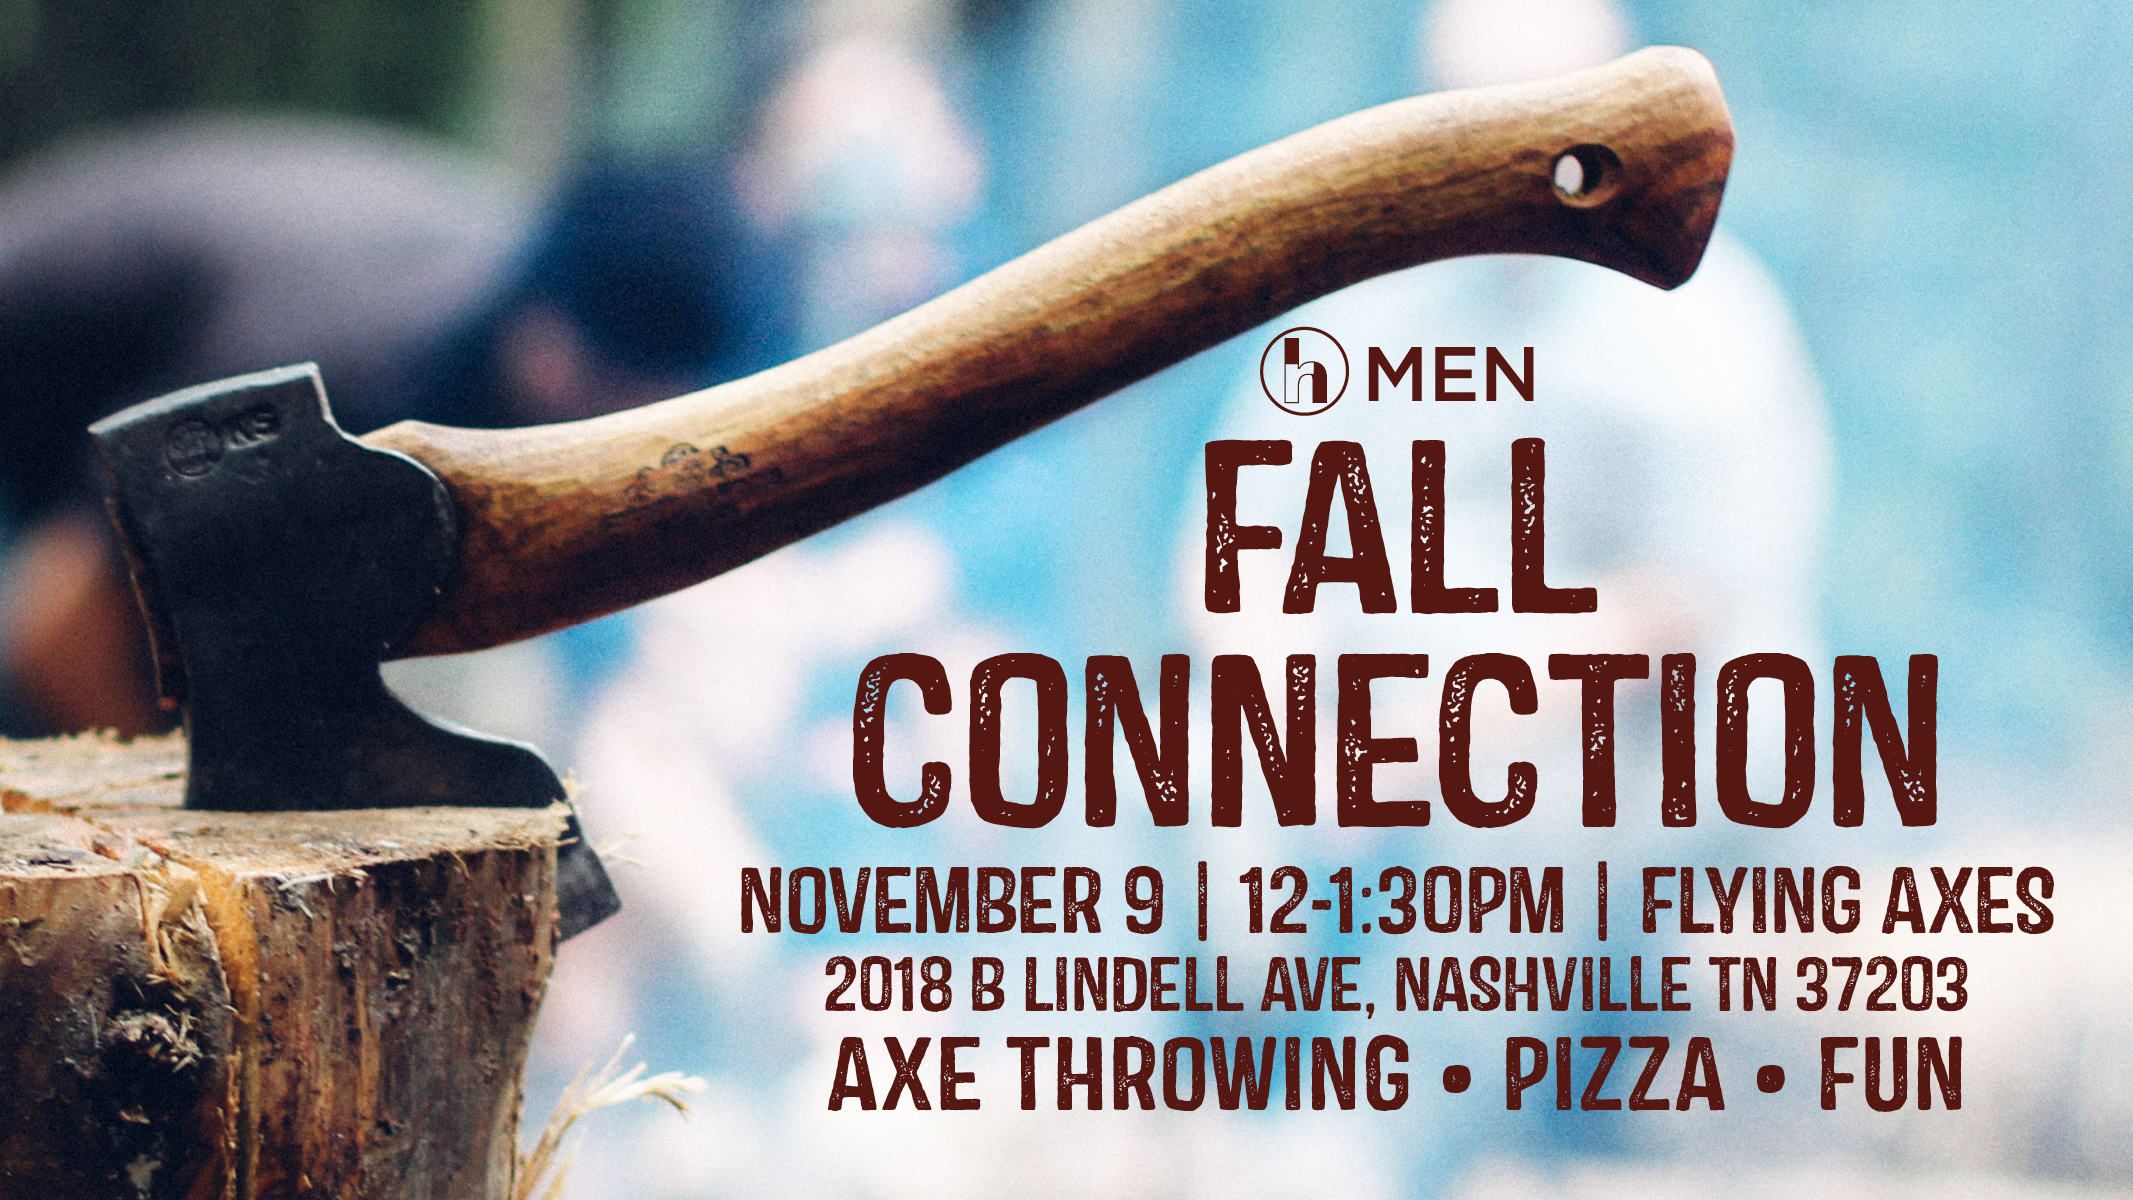 Men's Fall Connection